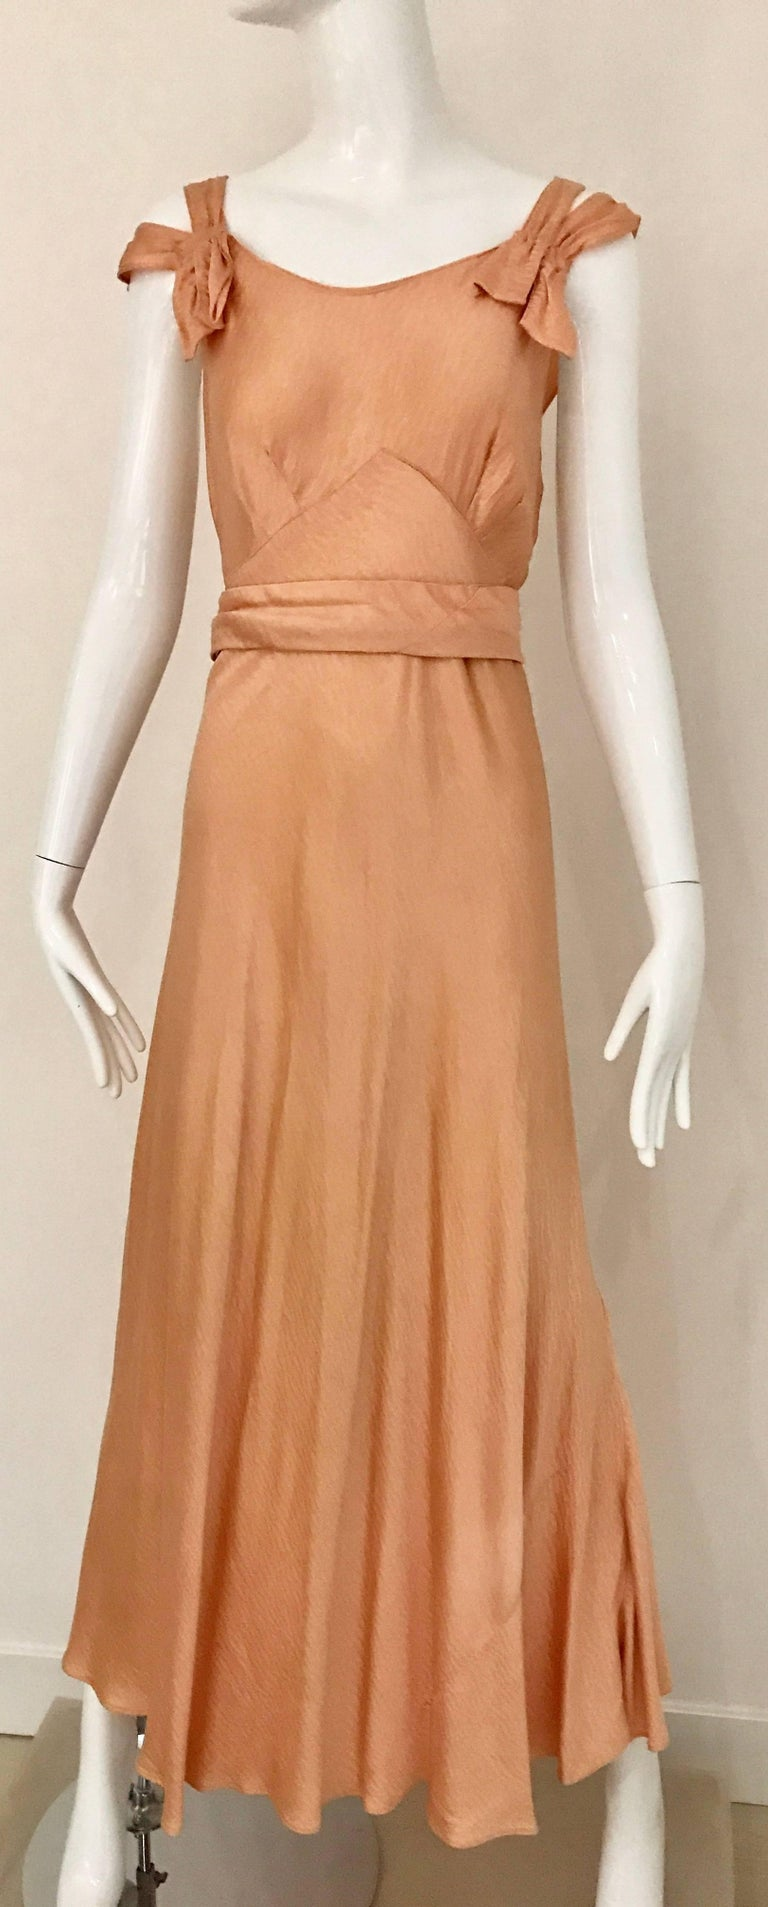 Beautiful 1930s peach silk spaghetti strap bias cut dress with trains at the back. Dress comes with capelet shawl.  Dress fit size 2/4 small Cape fit size 4/6 **small stains see image attached